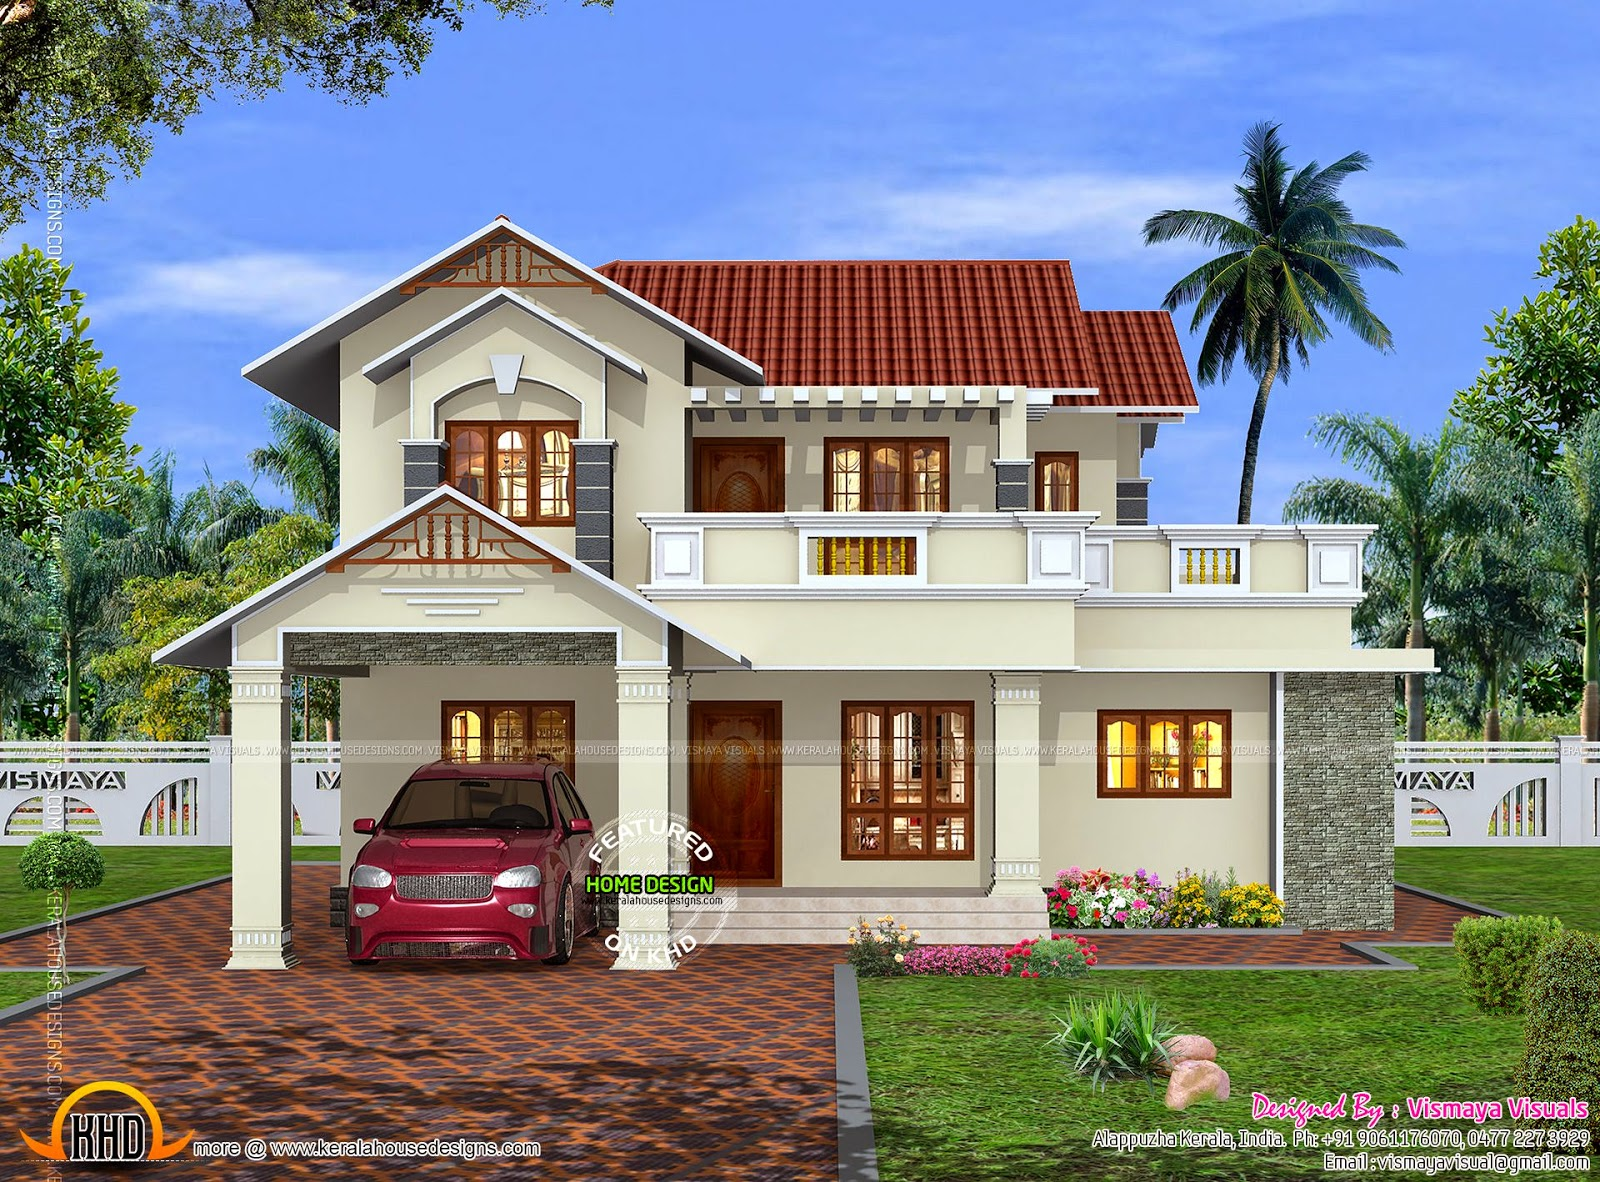 Some beautiful house designs kerala home design holidays oo for Beautiful small house plans in kerala